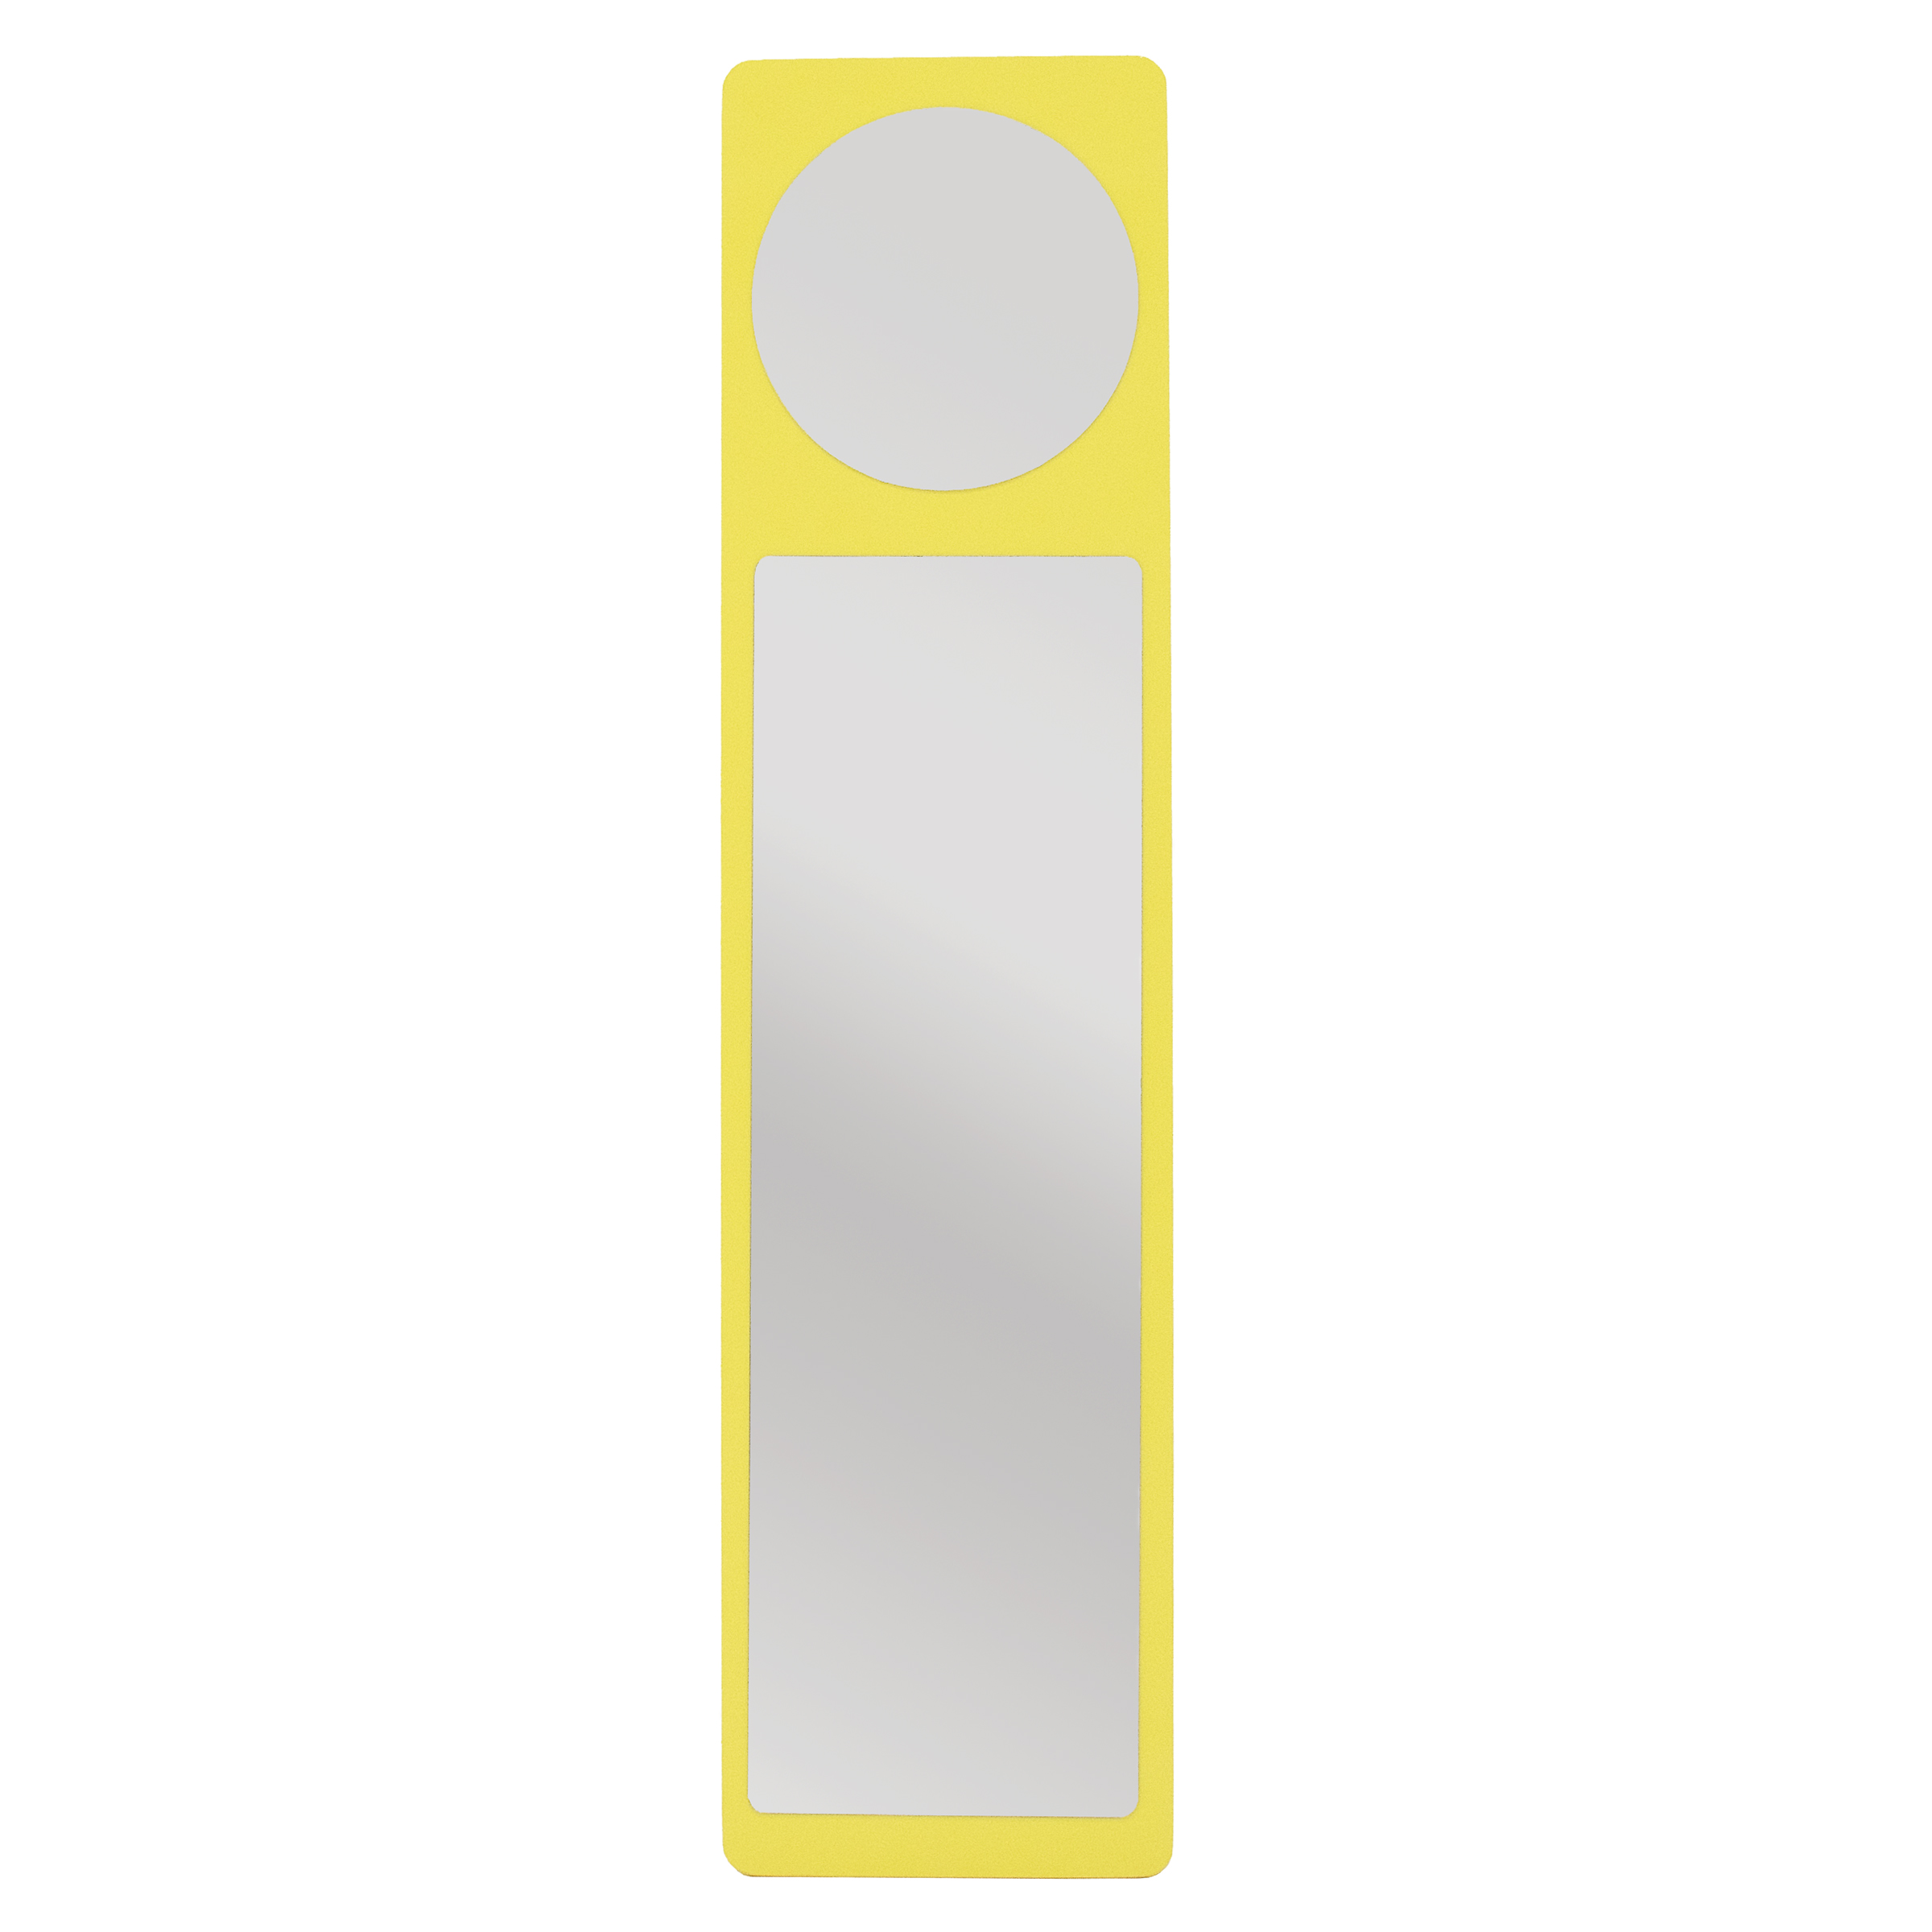 Bon Bon Mirror Yellow.jpg